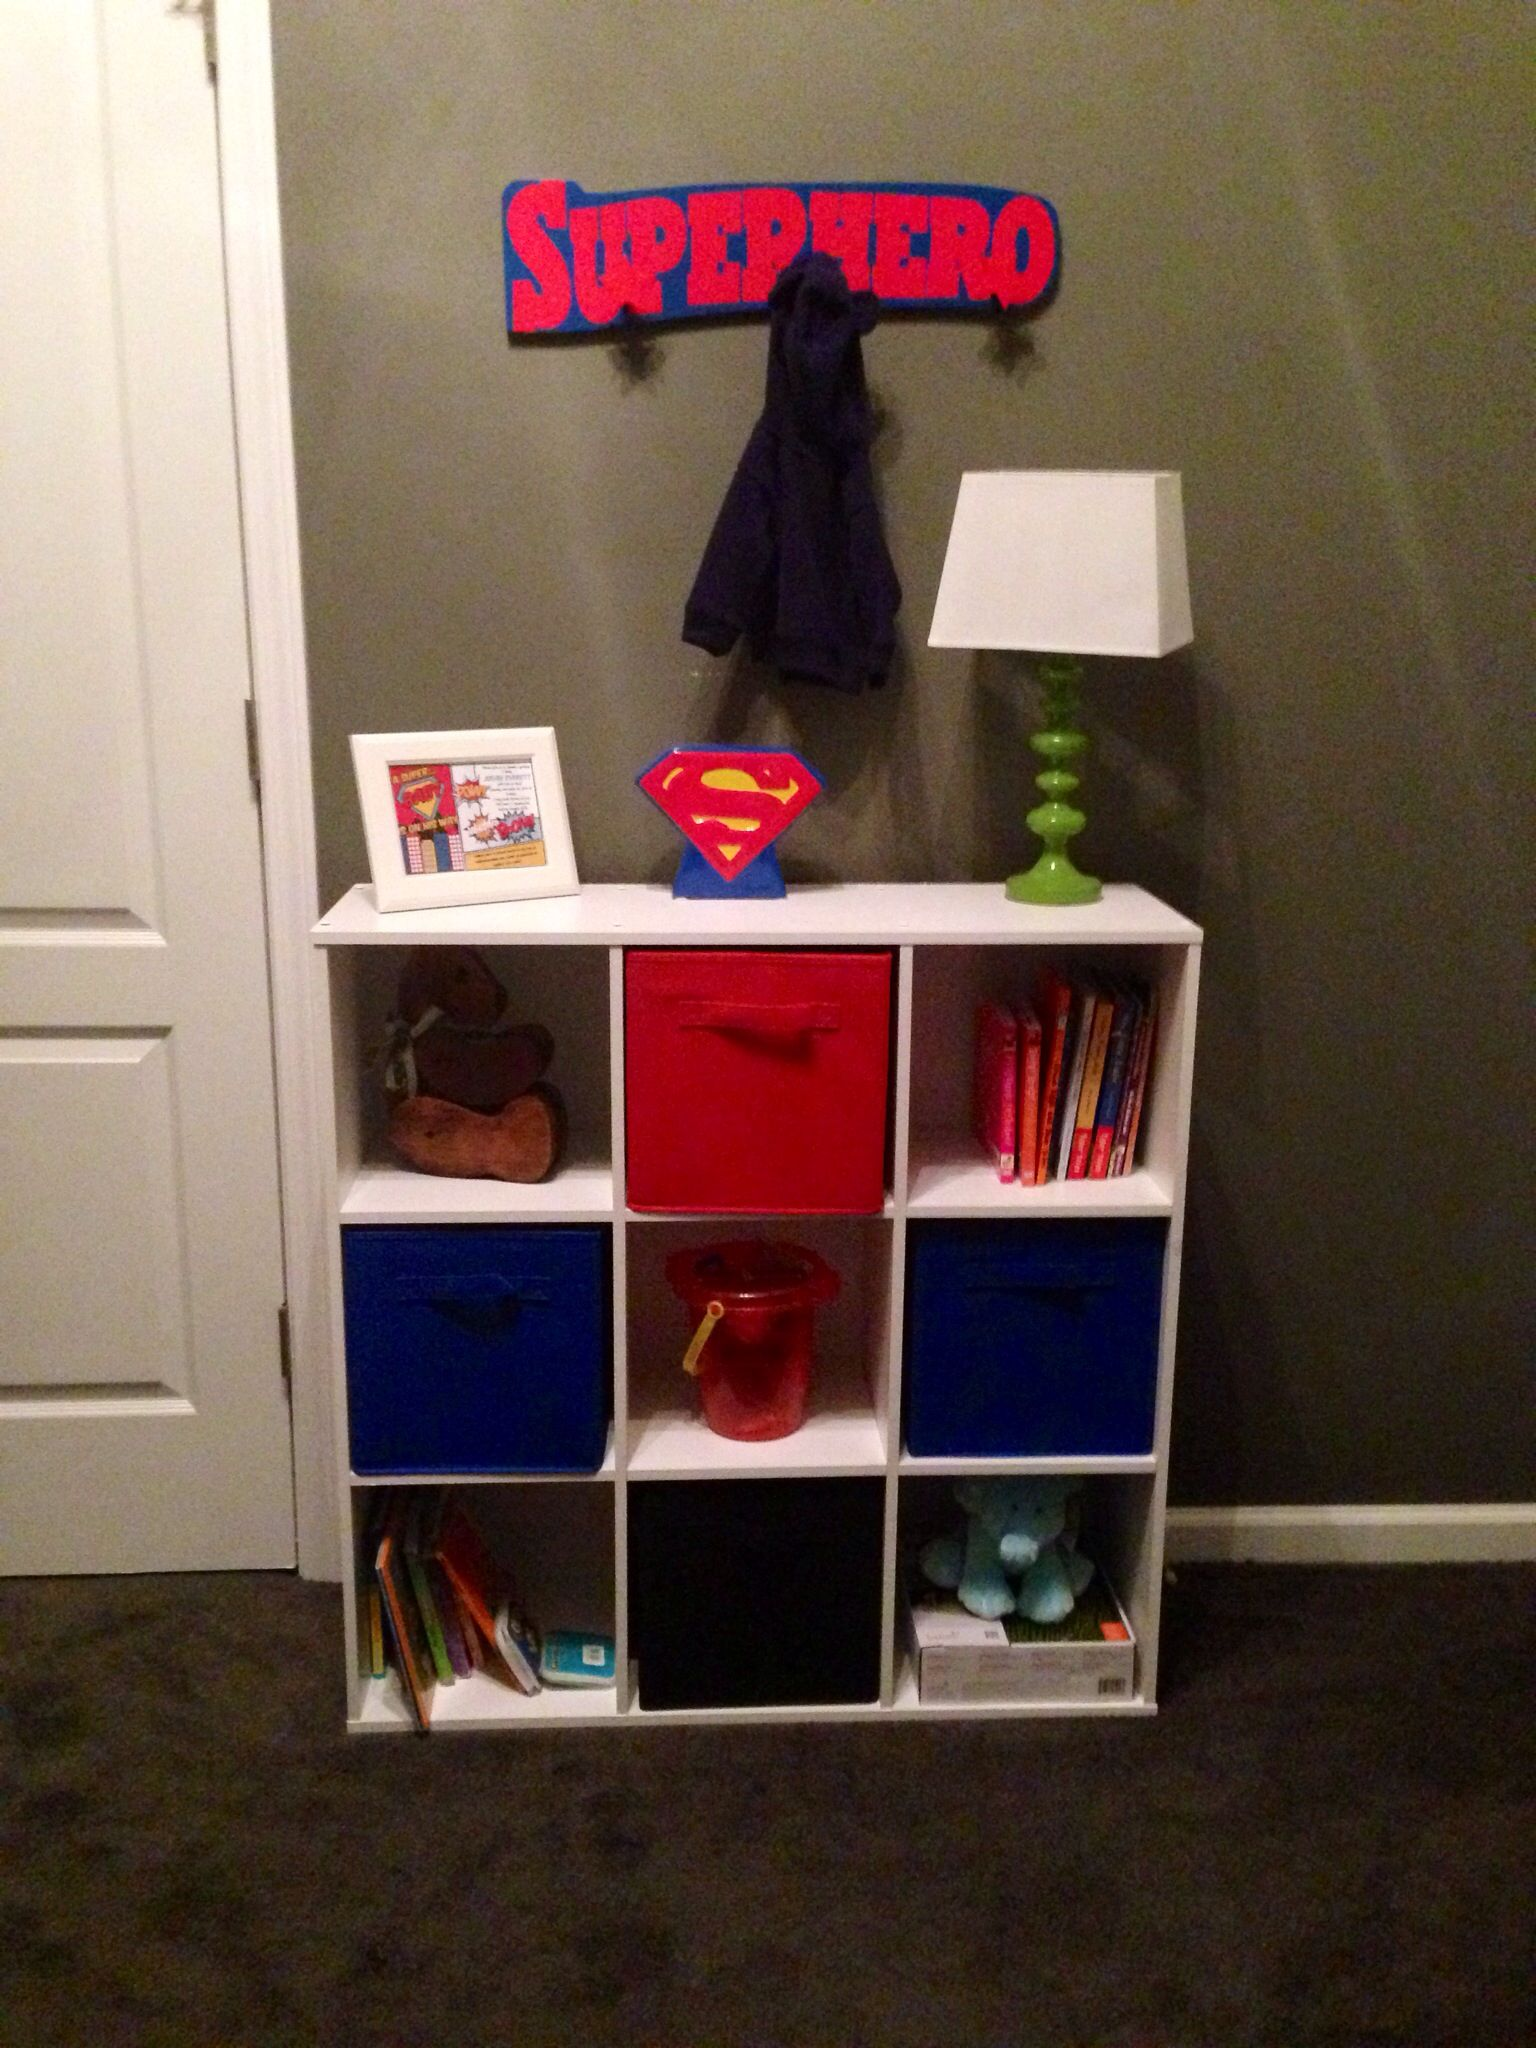 storage shelf and containers from target superhero coat rack from tjmaxx